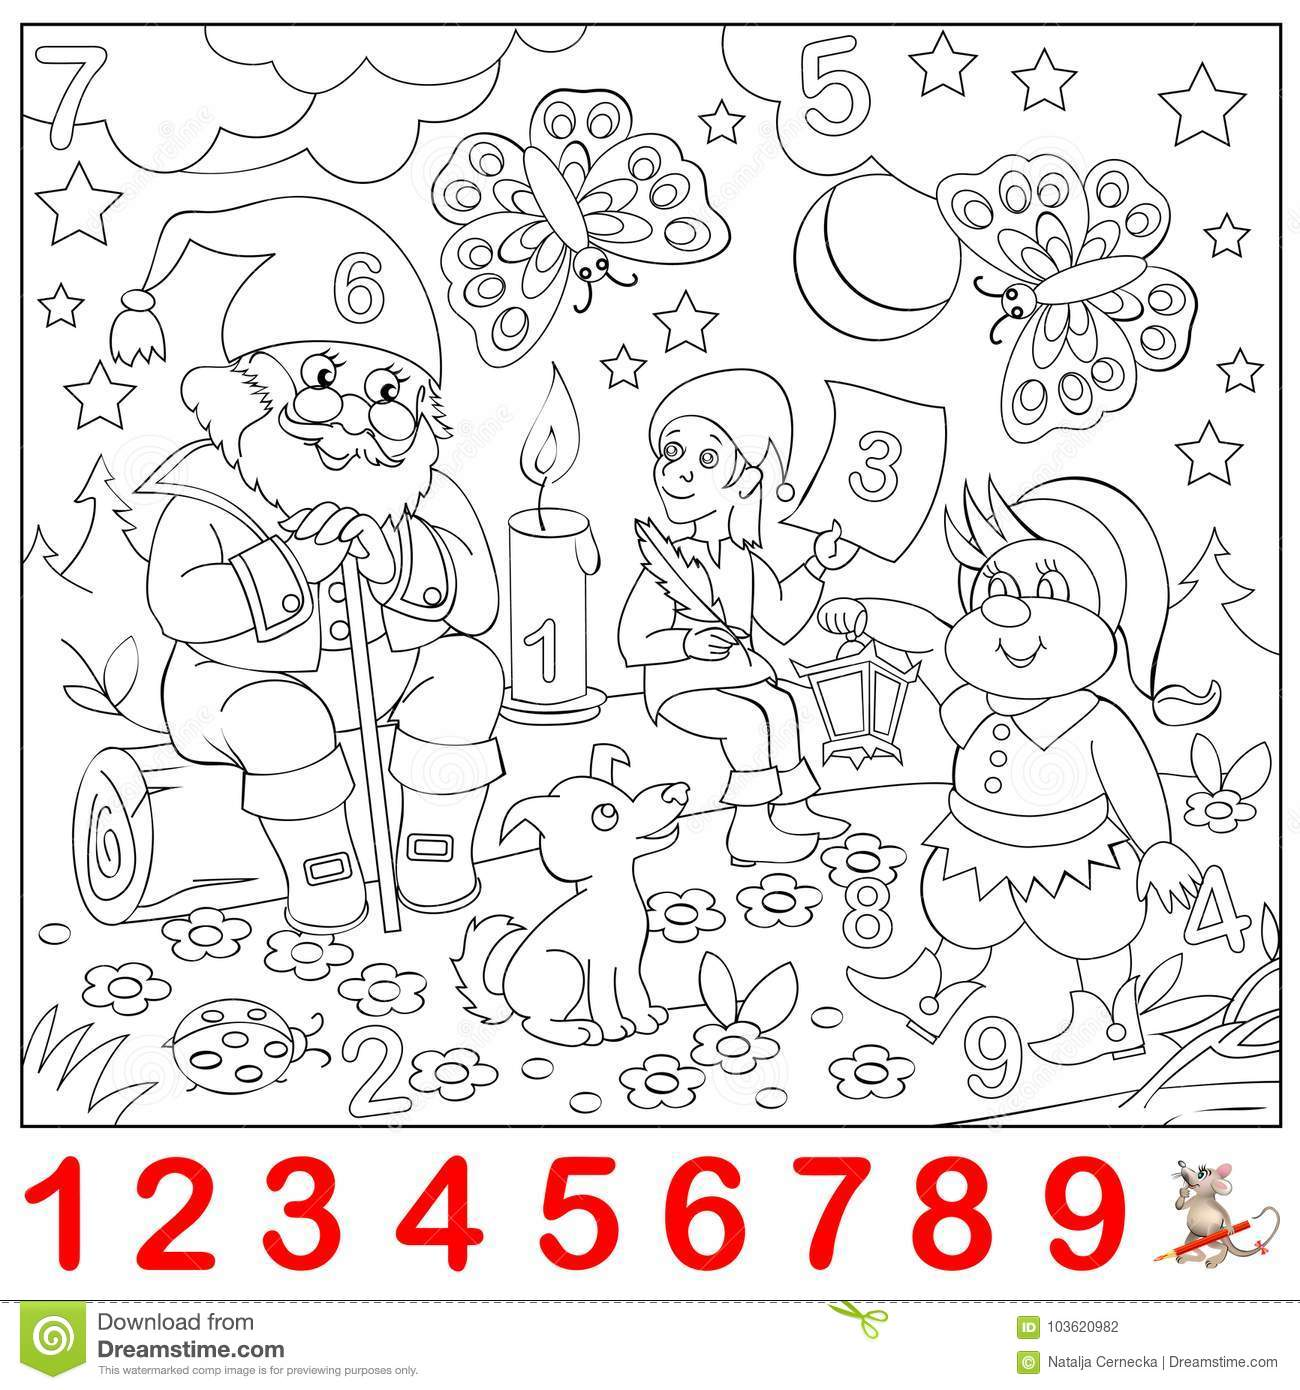 Download Educational Page For Young Children Find The Numbers Hidden In Picture And Paint